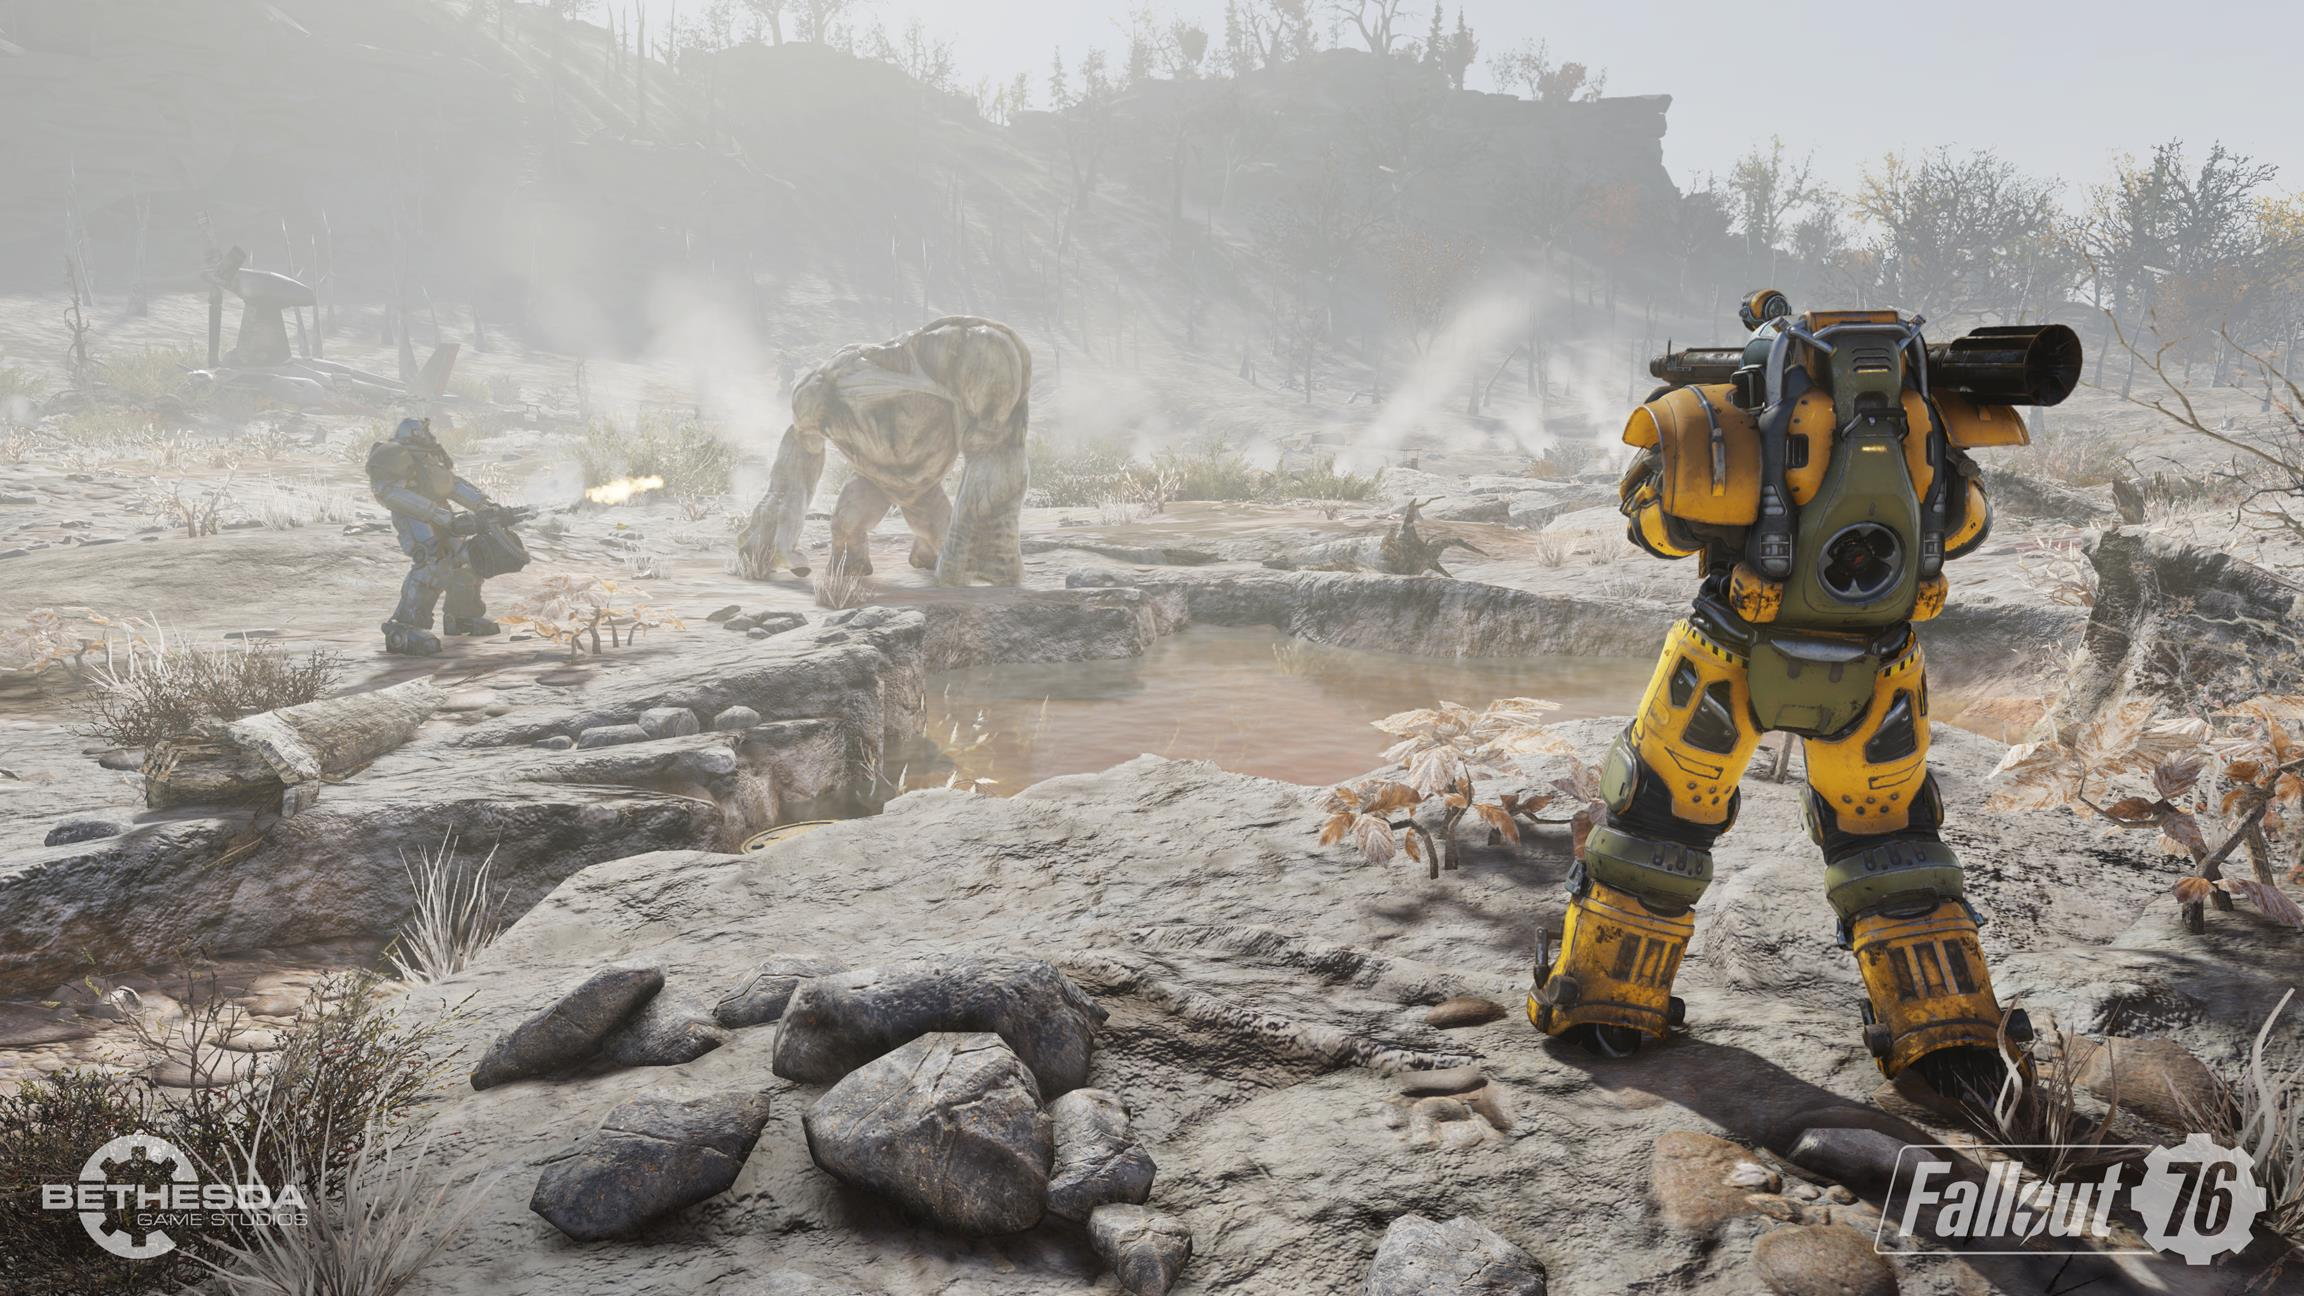 Unlocking the frame-rate in Fallout 76 turns on speed hacks